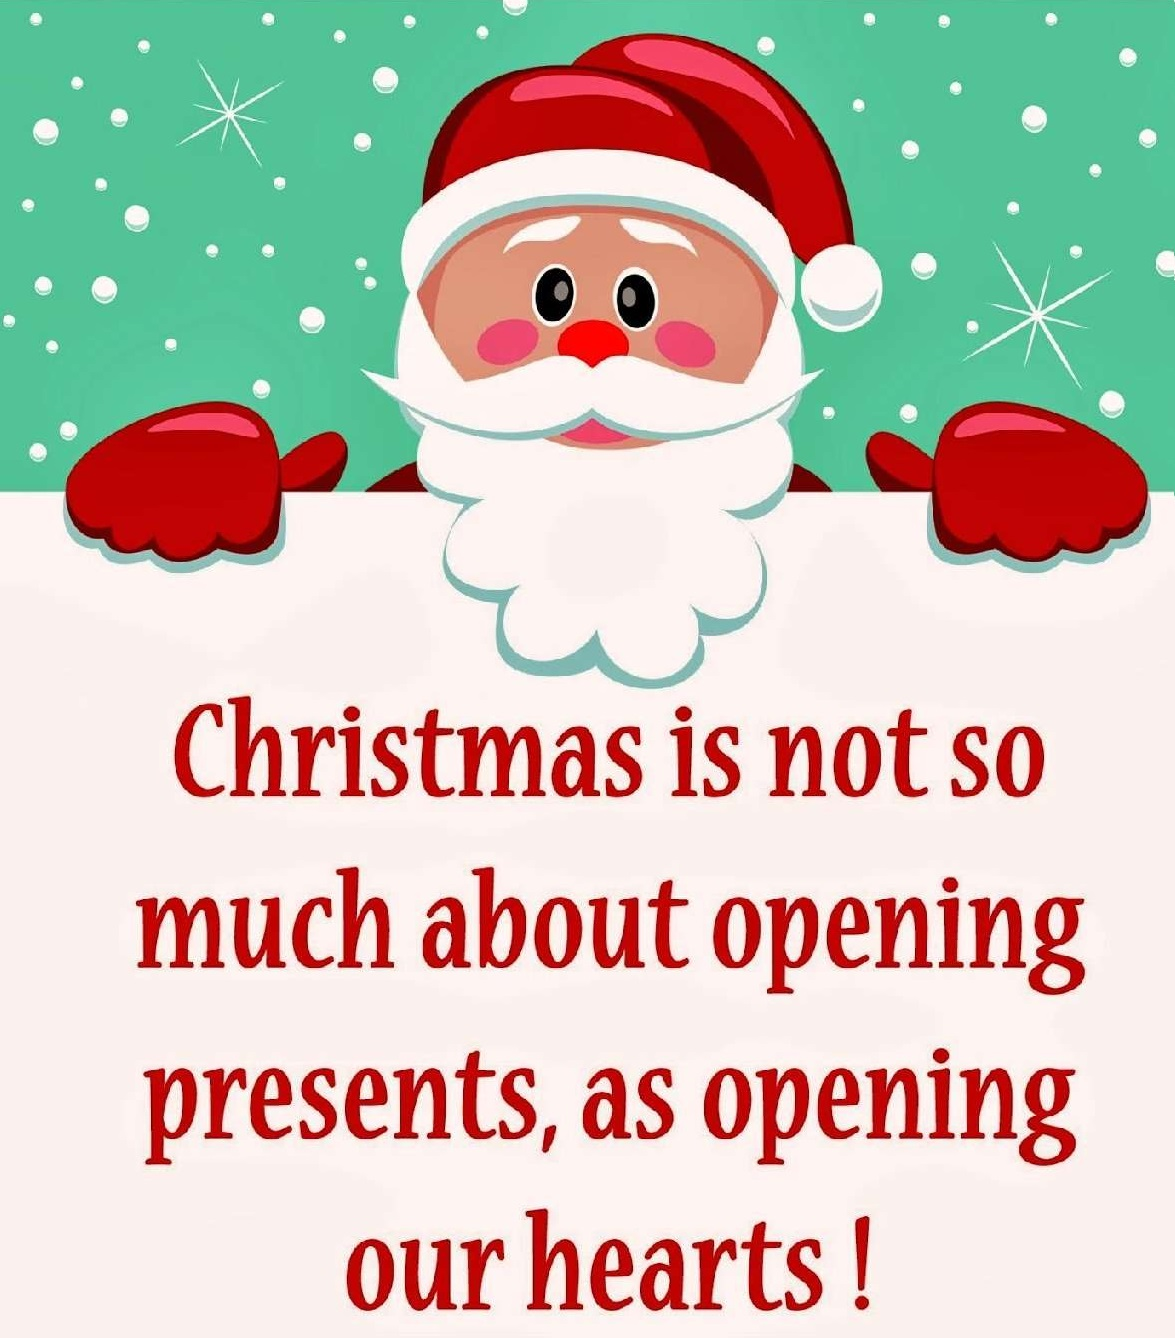 Christmas opens our hearts